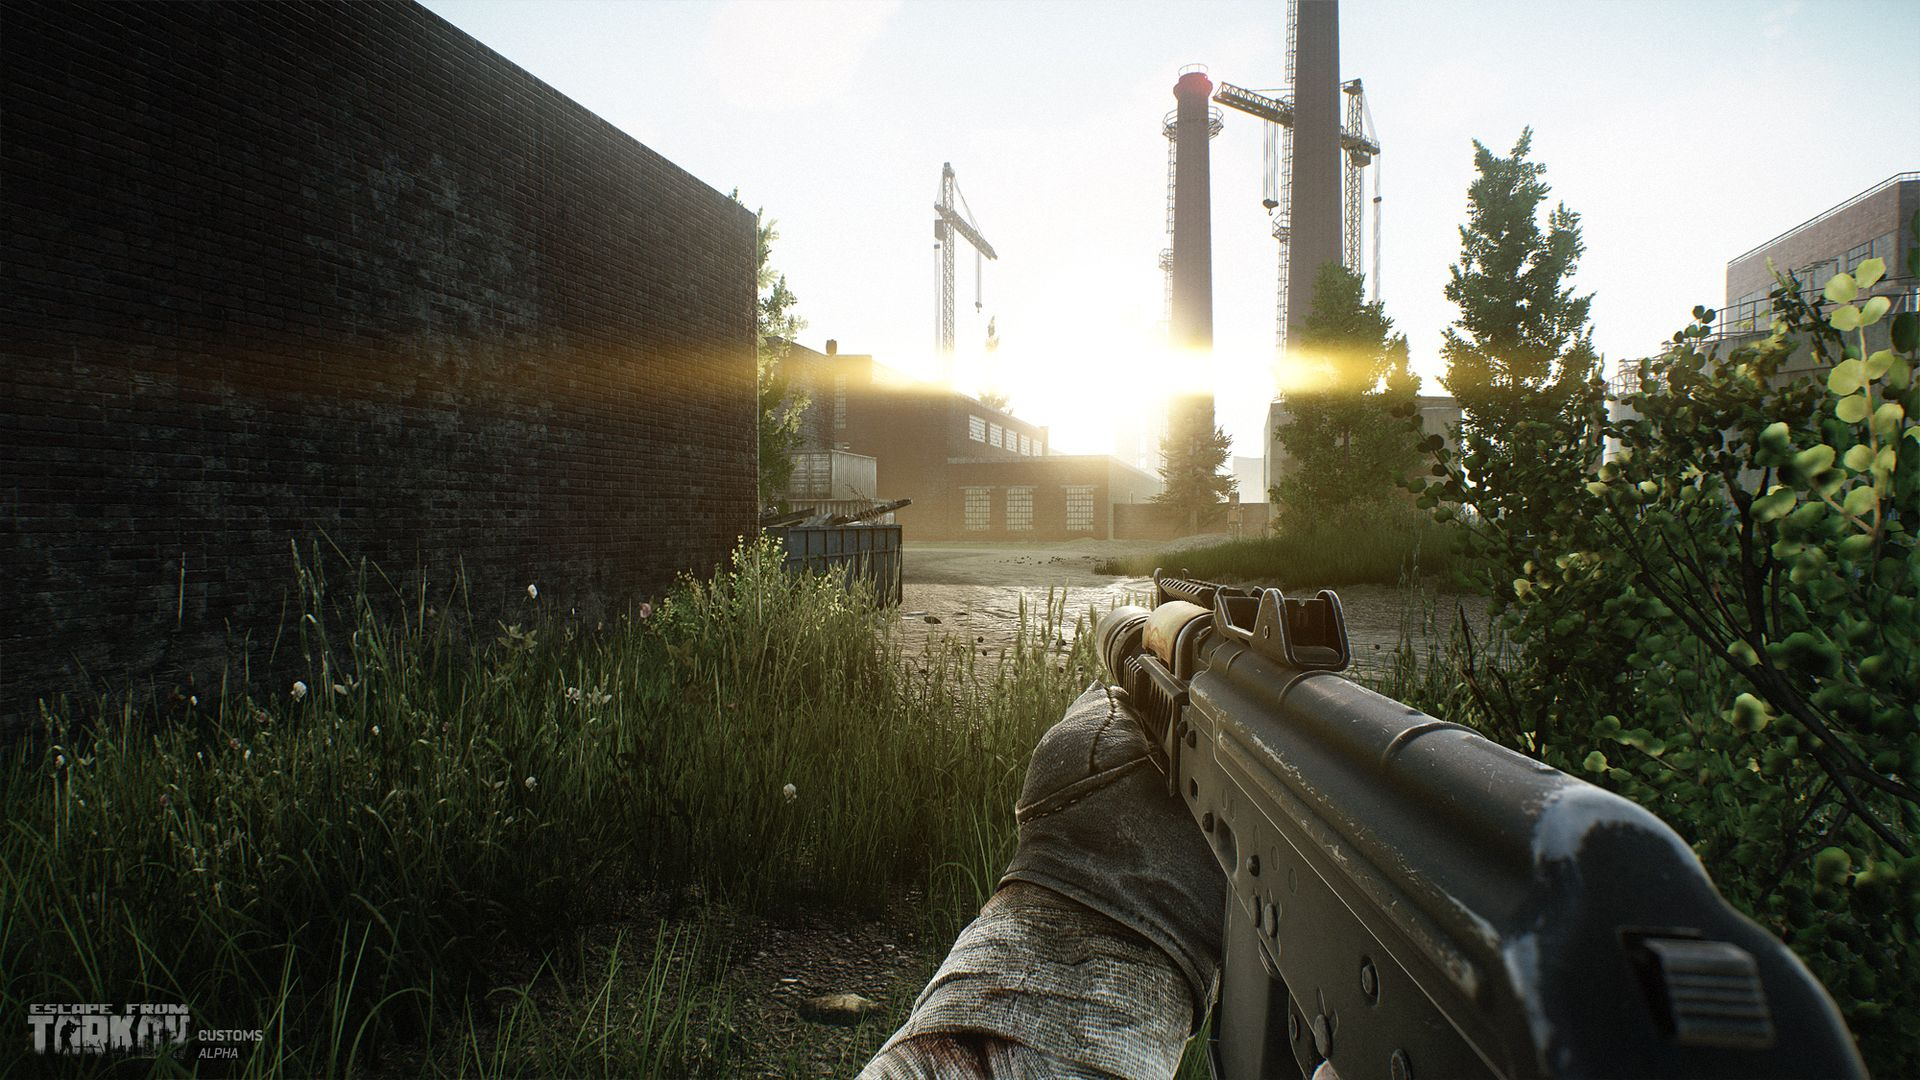 Escape From Tarkov Wallpaper 4k: Escape From Tarkov Expanding The Customs Location